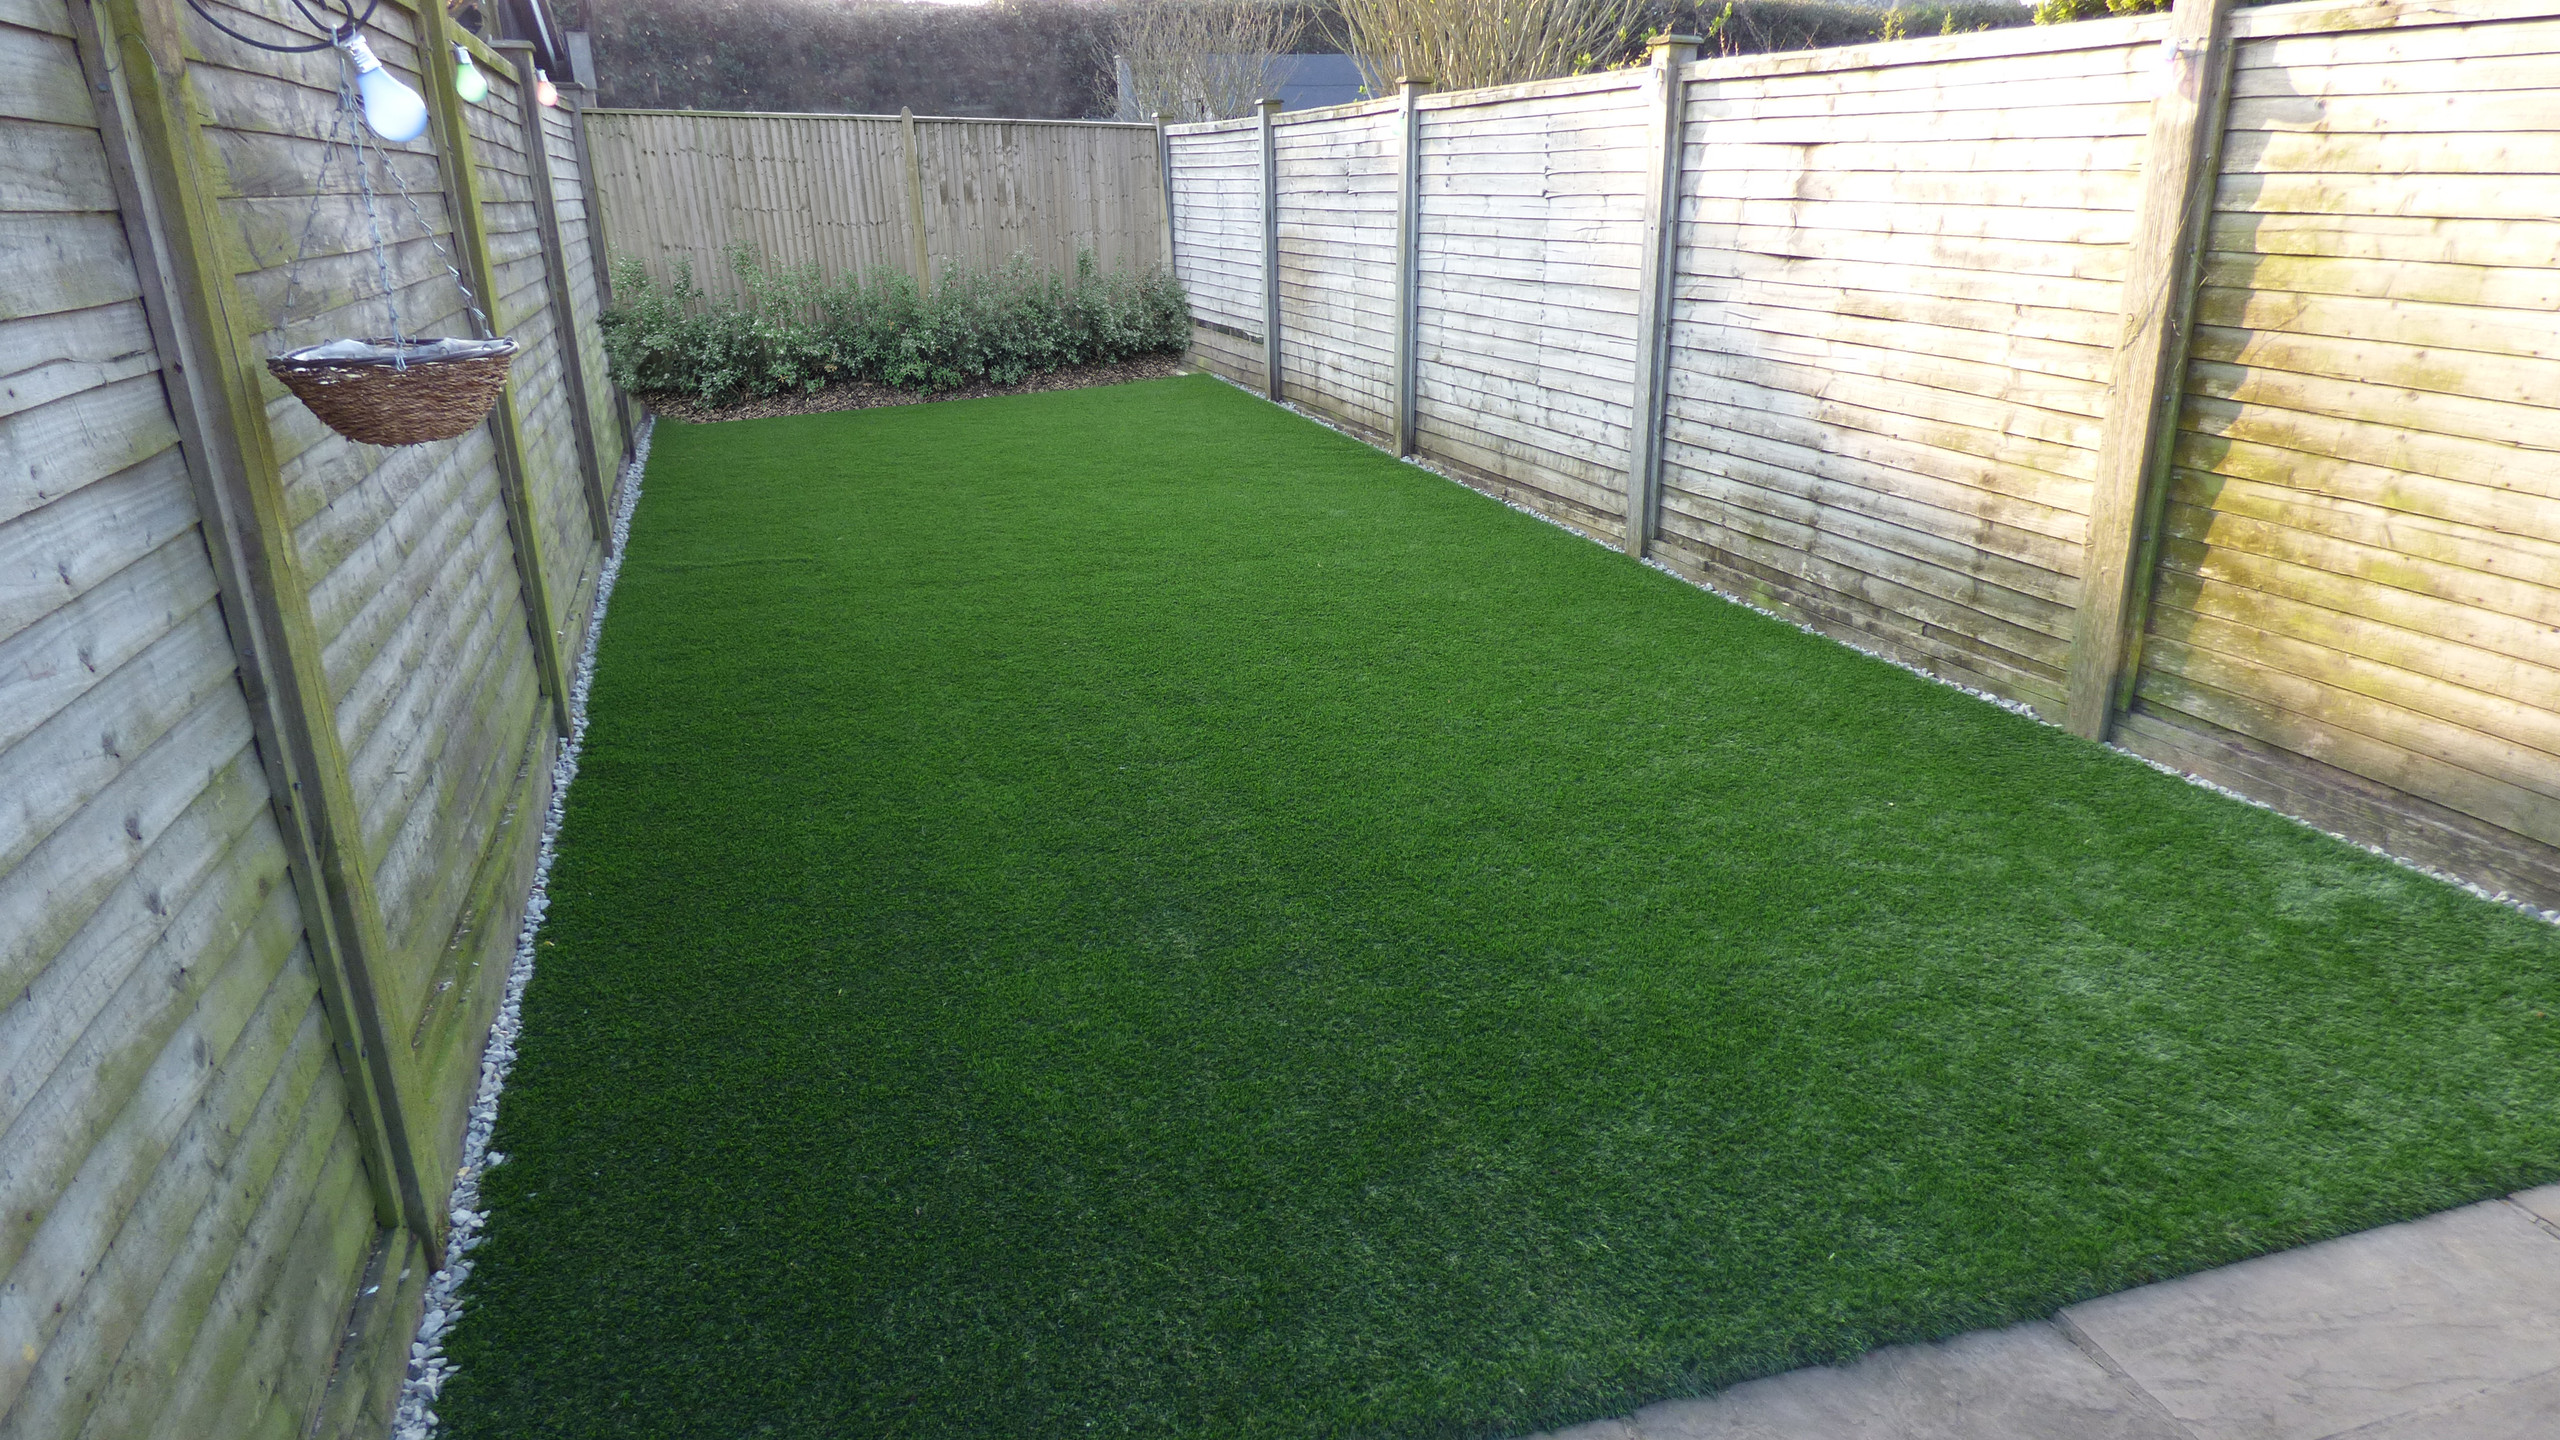 Timeless Artificial Lawn after installation to create pet friendly back garden